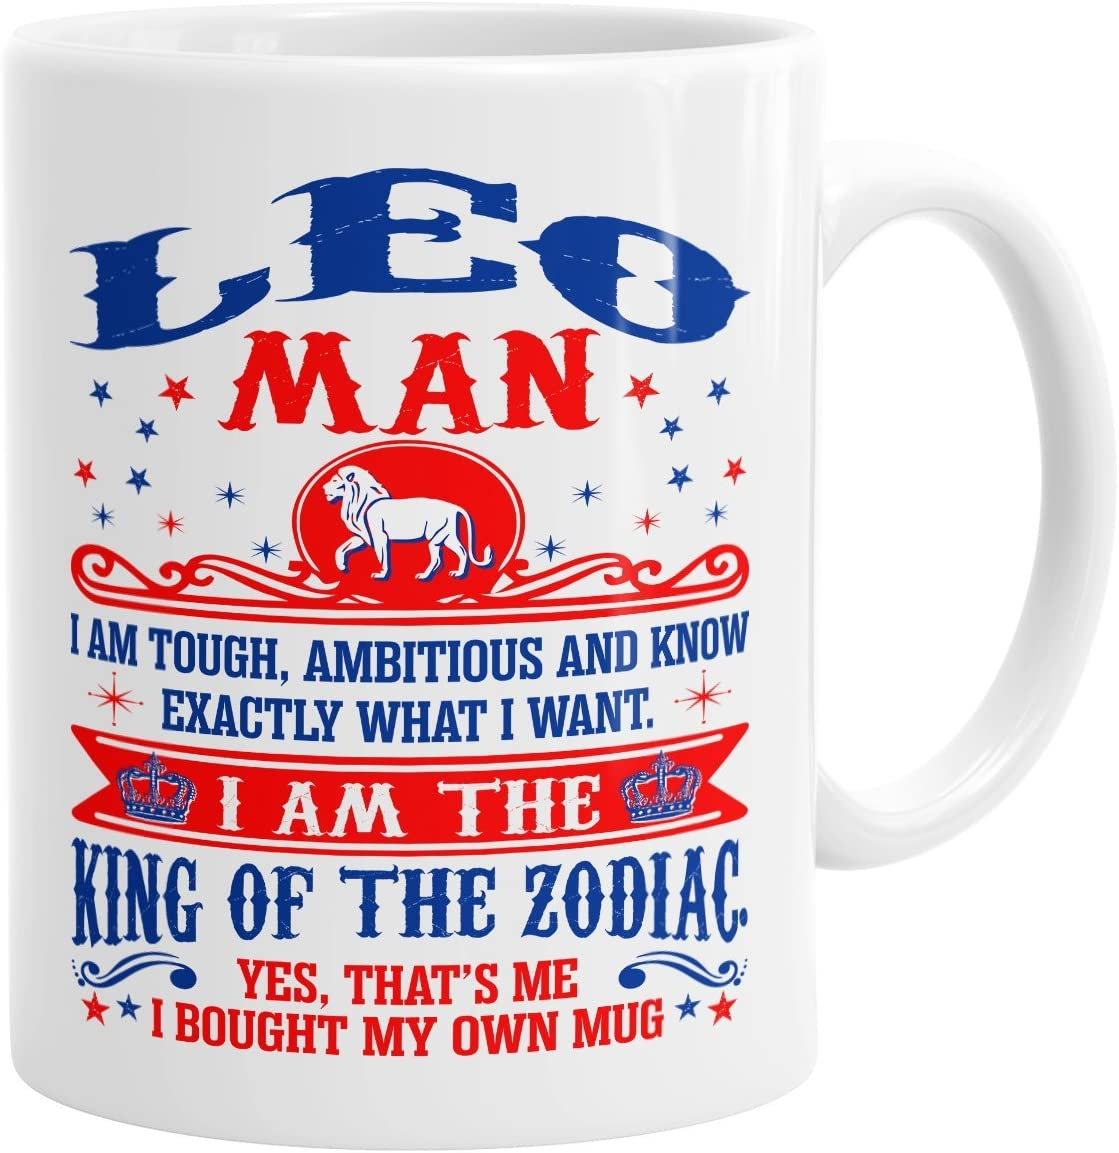 What to know about a leo man